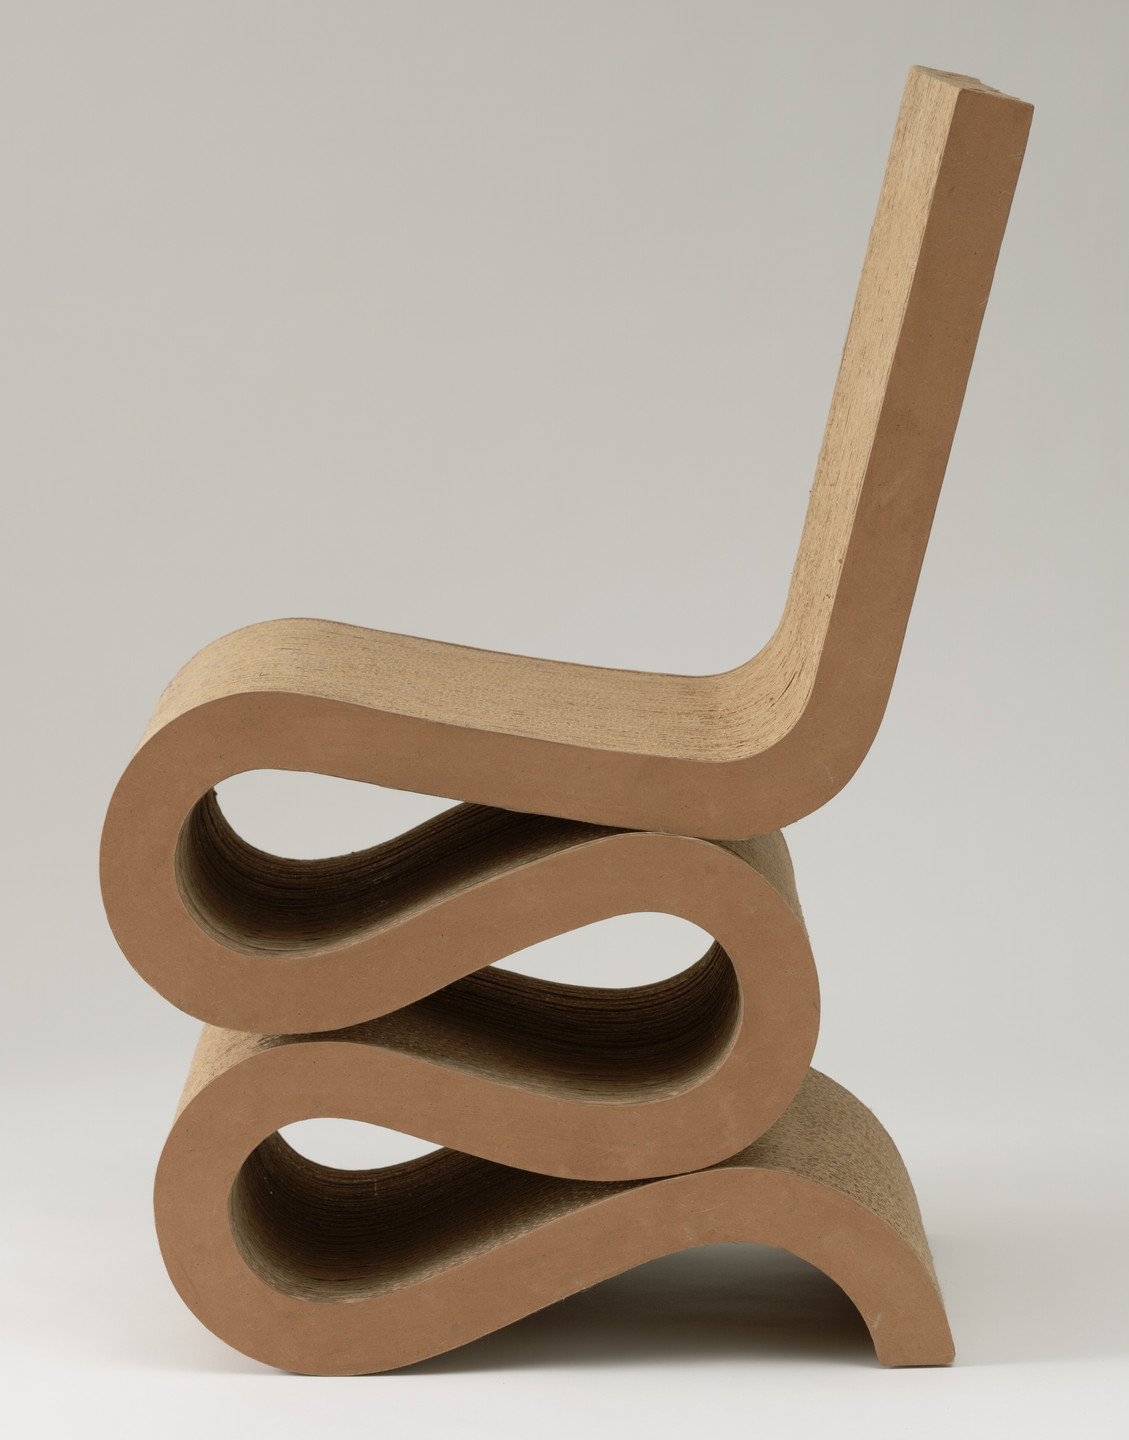 Frank O. Gehry. Easy Edges Side Chair. 1972